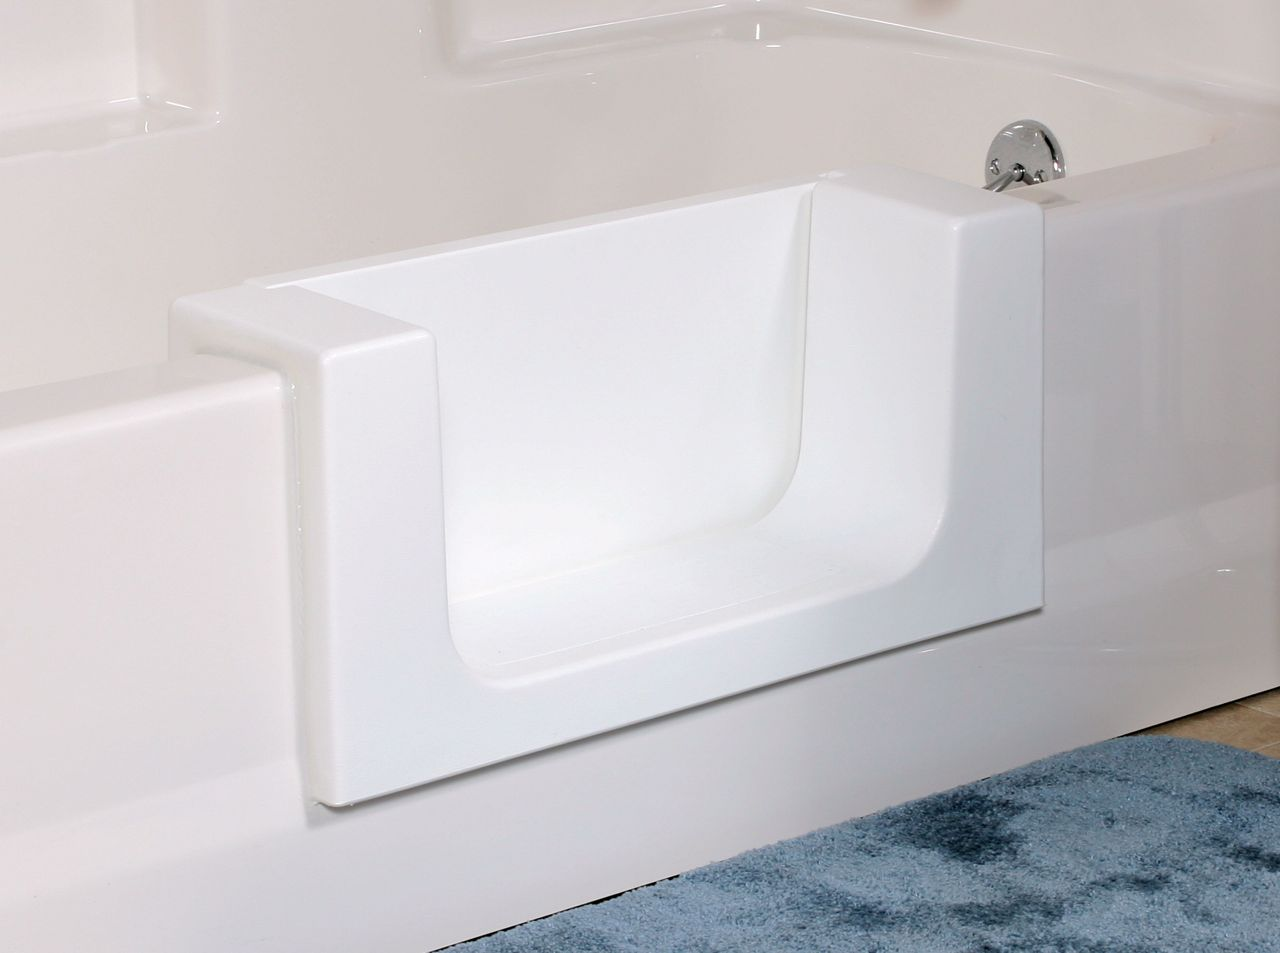 Miracle Method Introduces a Door Option for Its Easy Step™ Bathtub ...